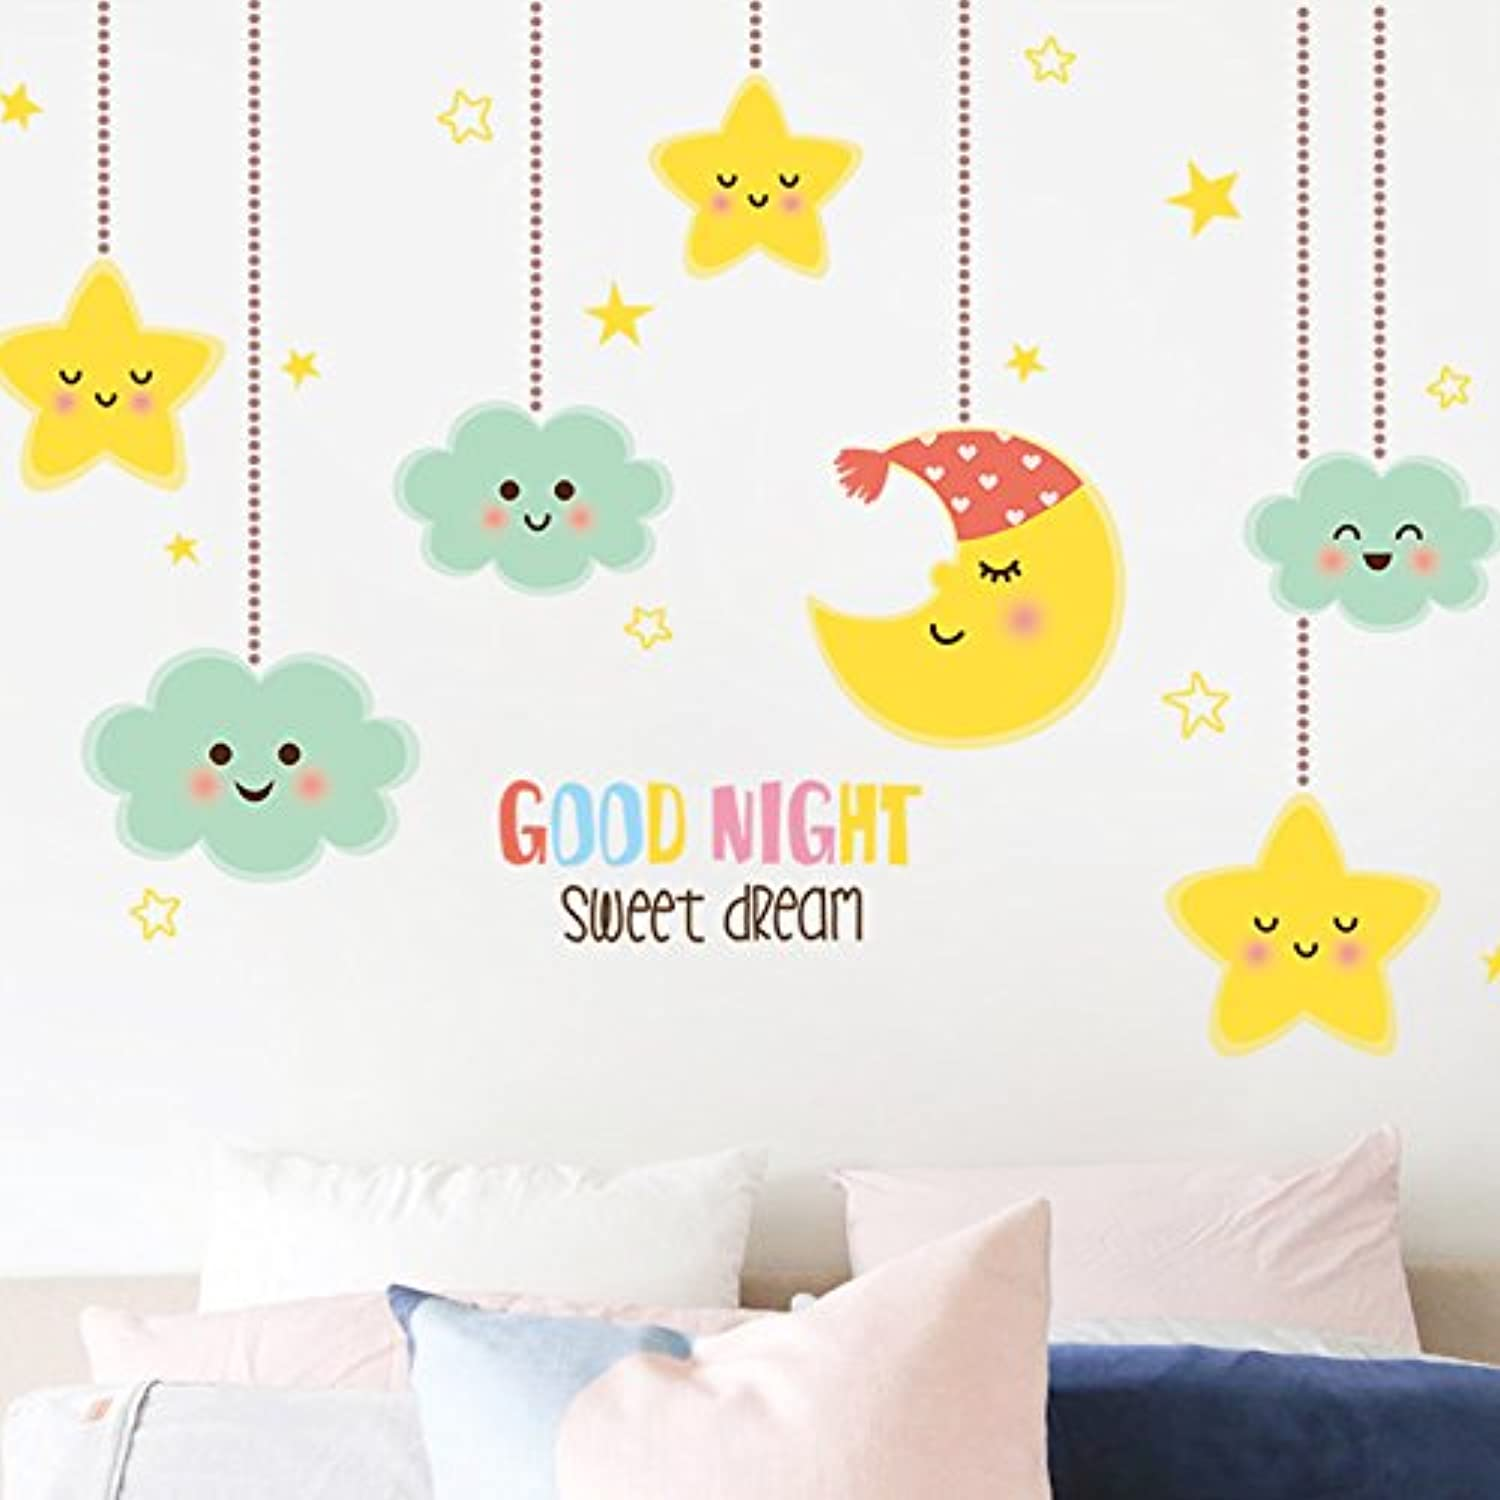 Znzbzt Wall on Living Room Wall Sticker Decor Posters self Adhesive ...